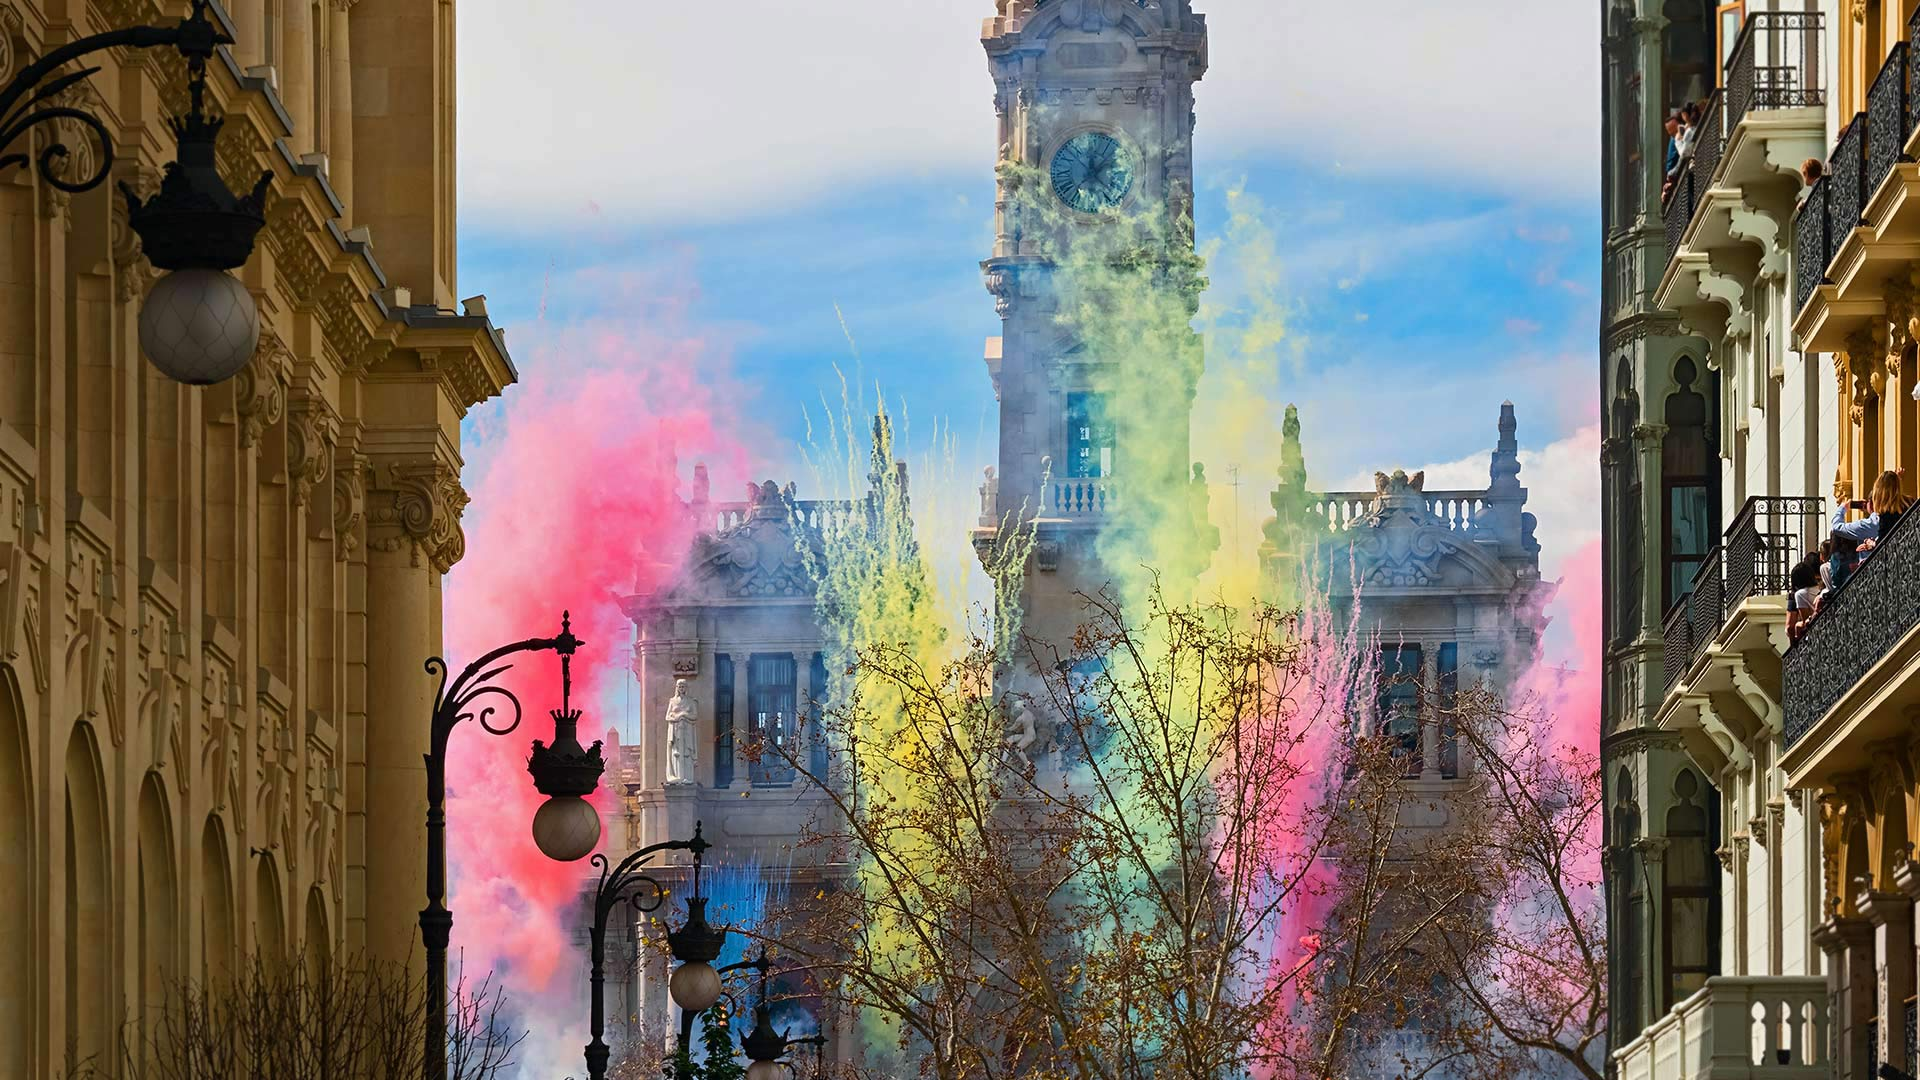 Fireworks at the Plaza del Ayuntamiento for Las Fallas festival in Valencia, Spain (© Helena G.H/Shutterstock)(Bing United States)